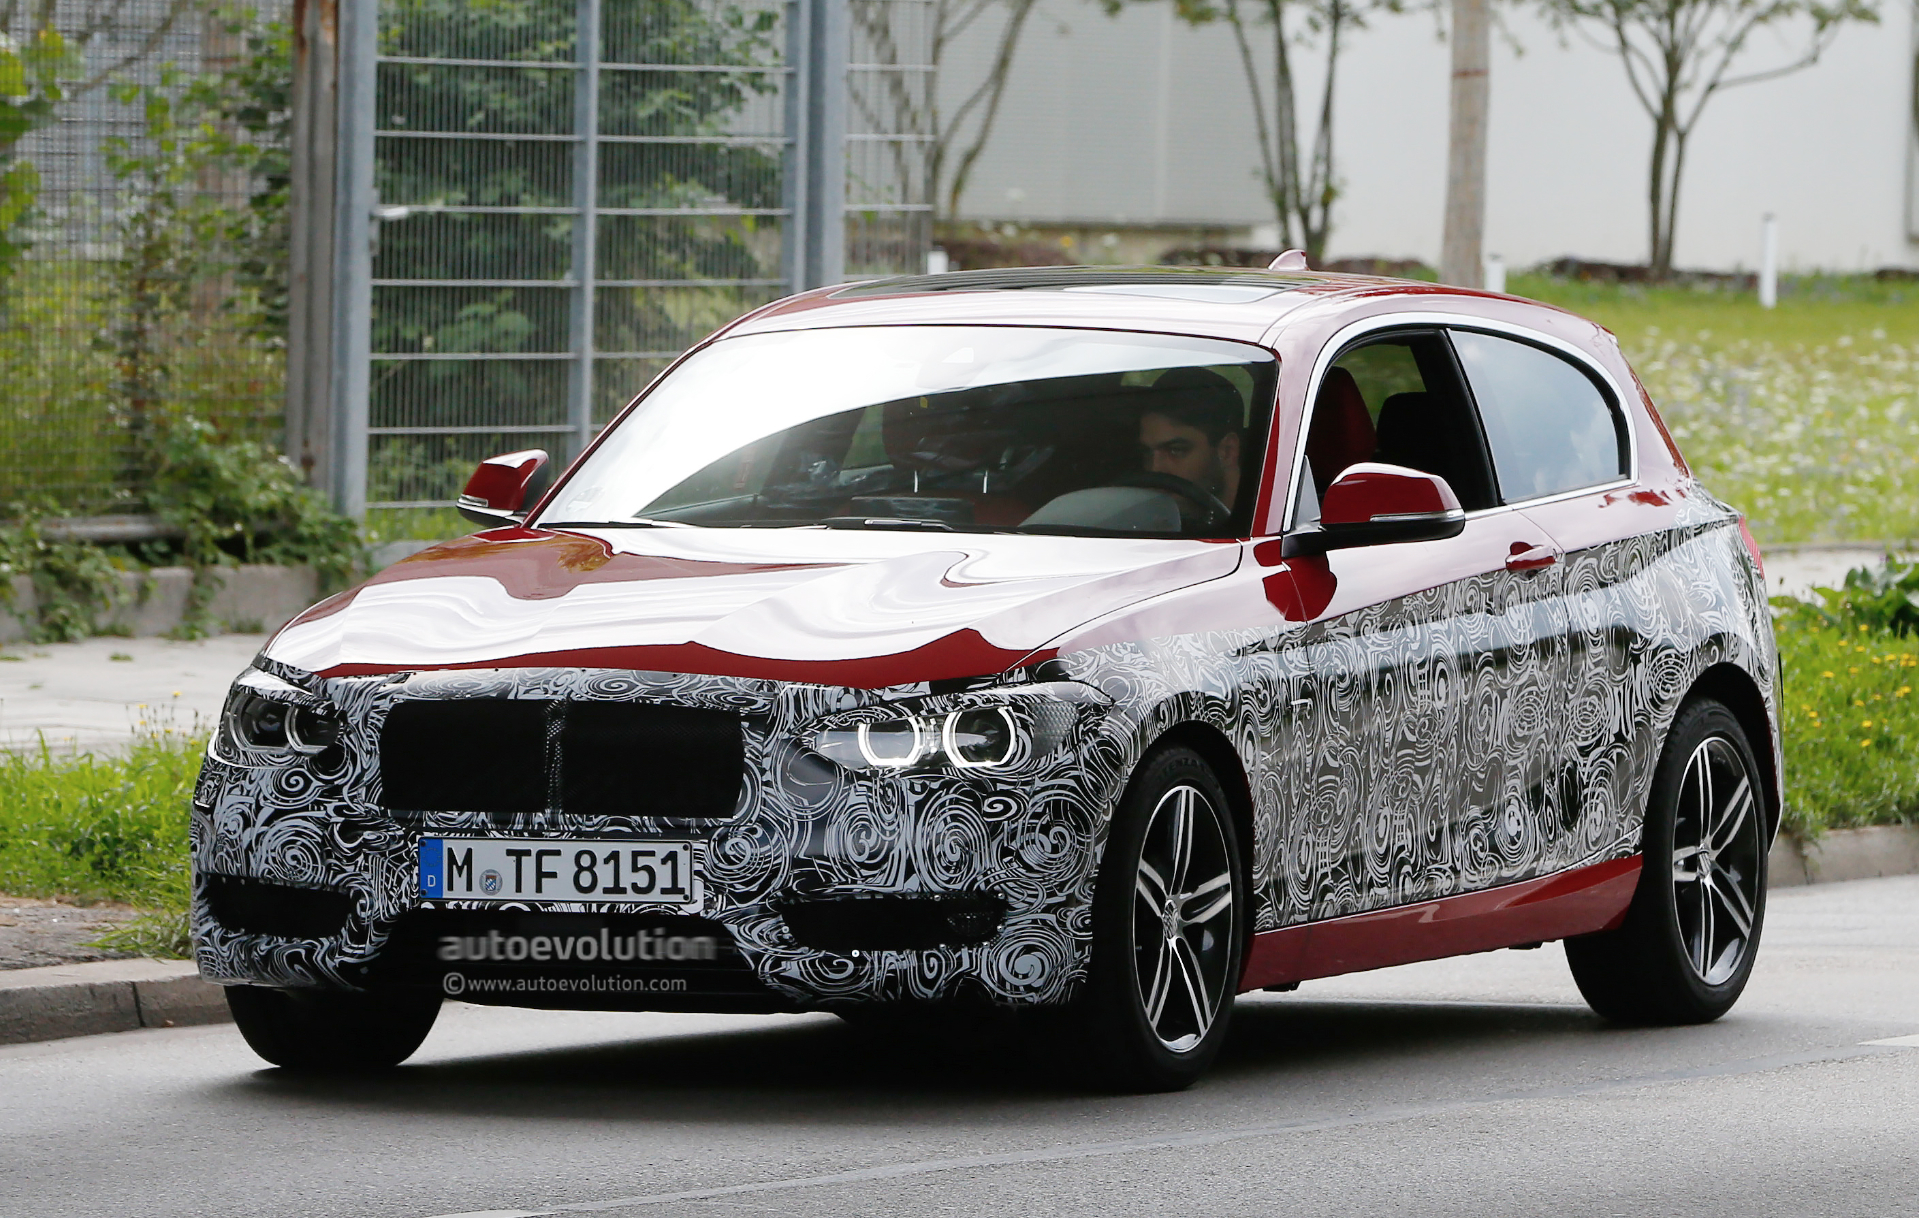 bmw 1 series facelift will get led headlights next year autoevolution. Black Bedroom Furniture Sets. Home Design Ideas